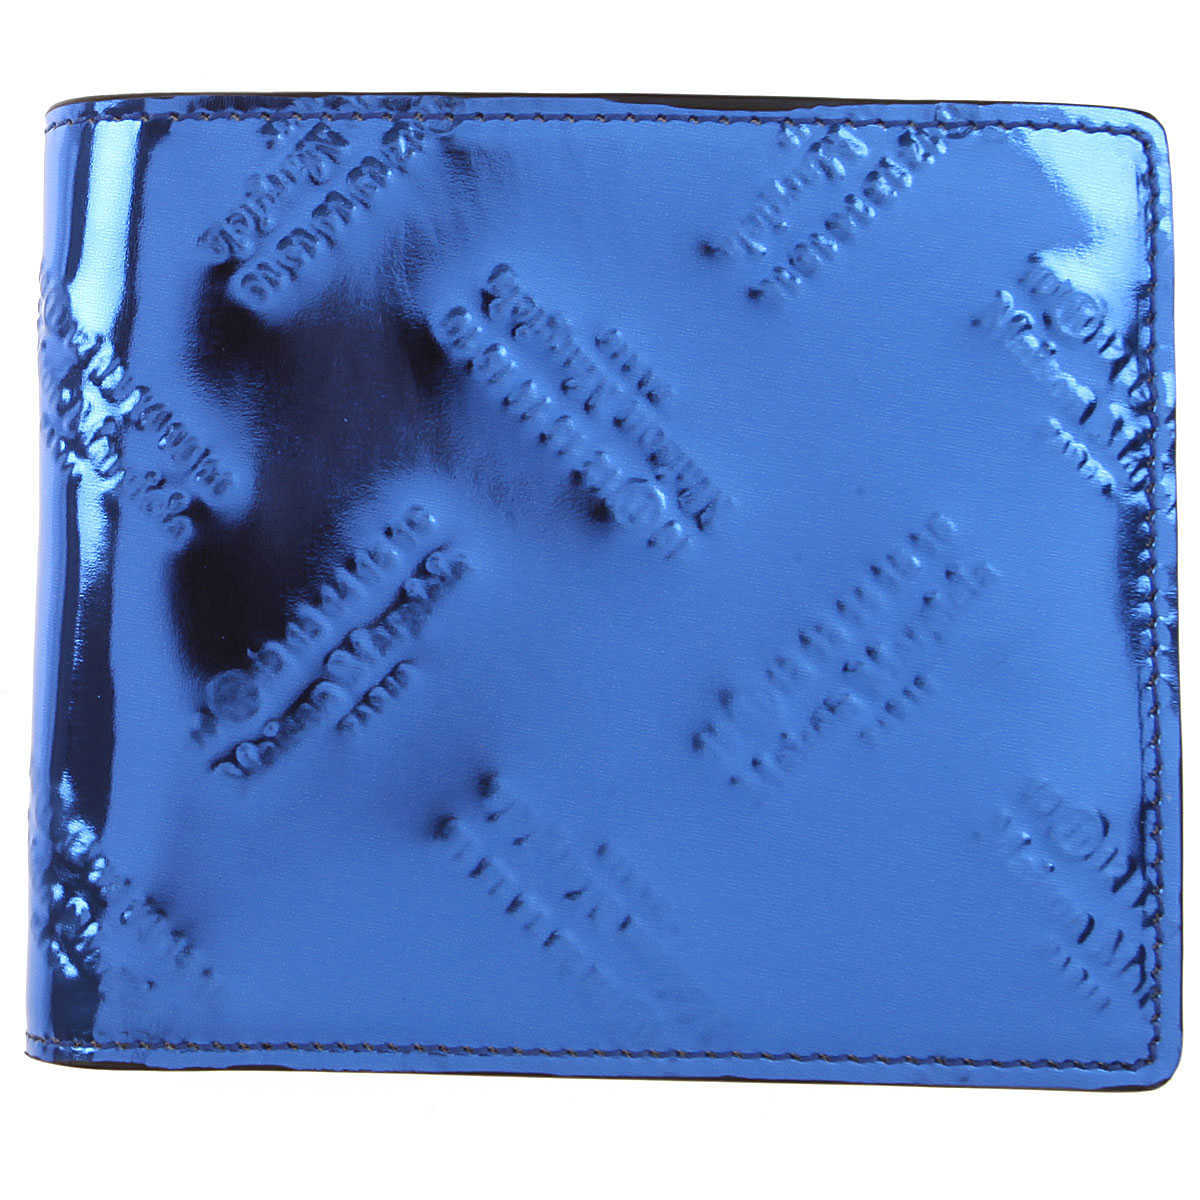 Maison Martin Margiela Wallet for Men On Sale in Outlet Nautical Blue - GOOFASH